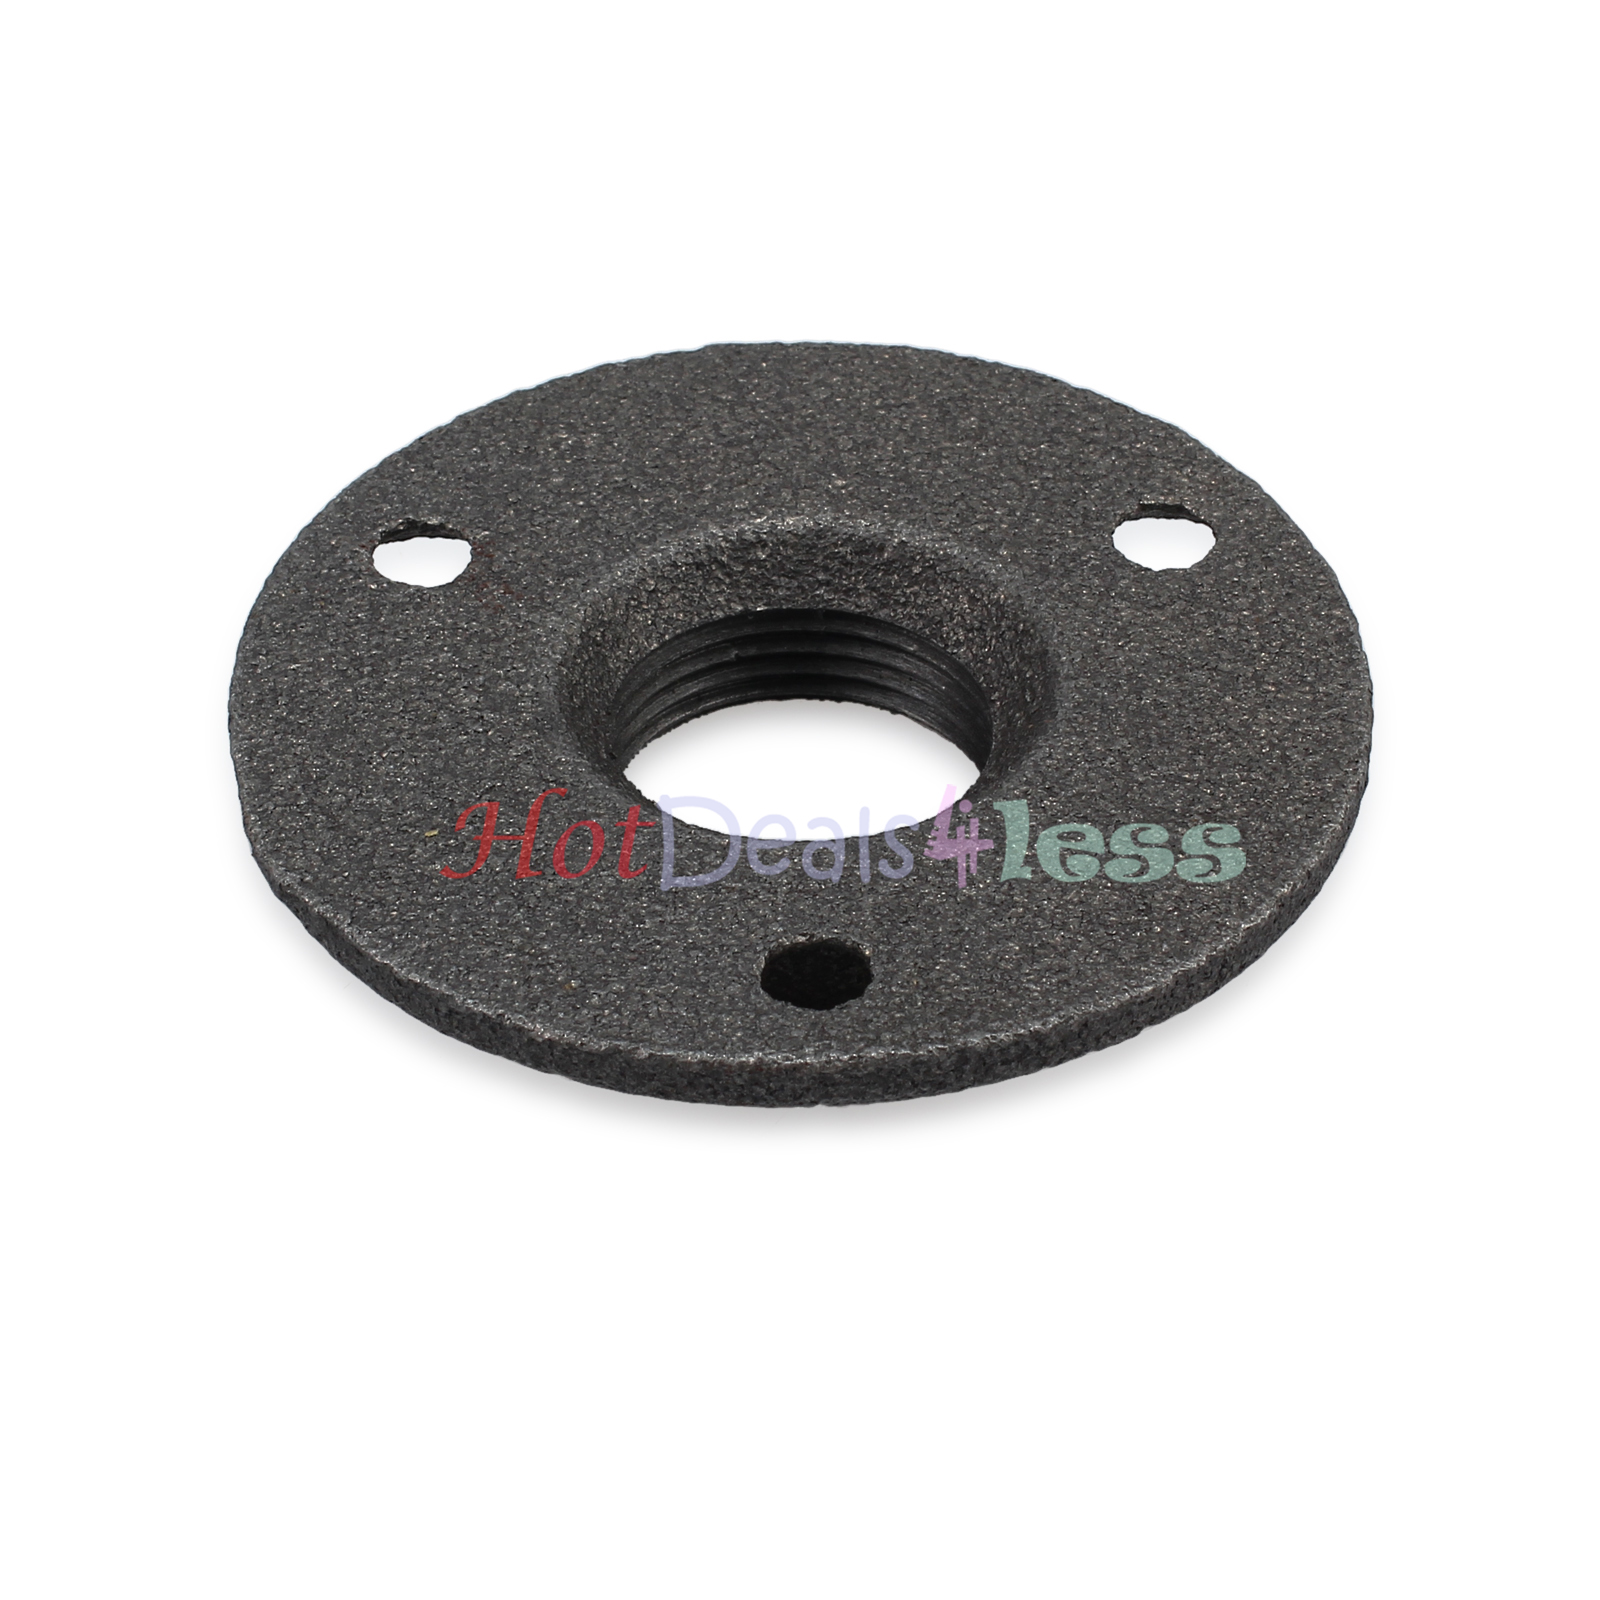 Threaded malleable floor flange iron pipe